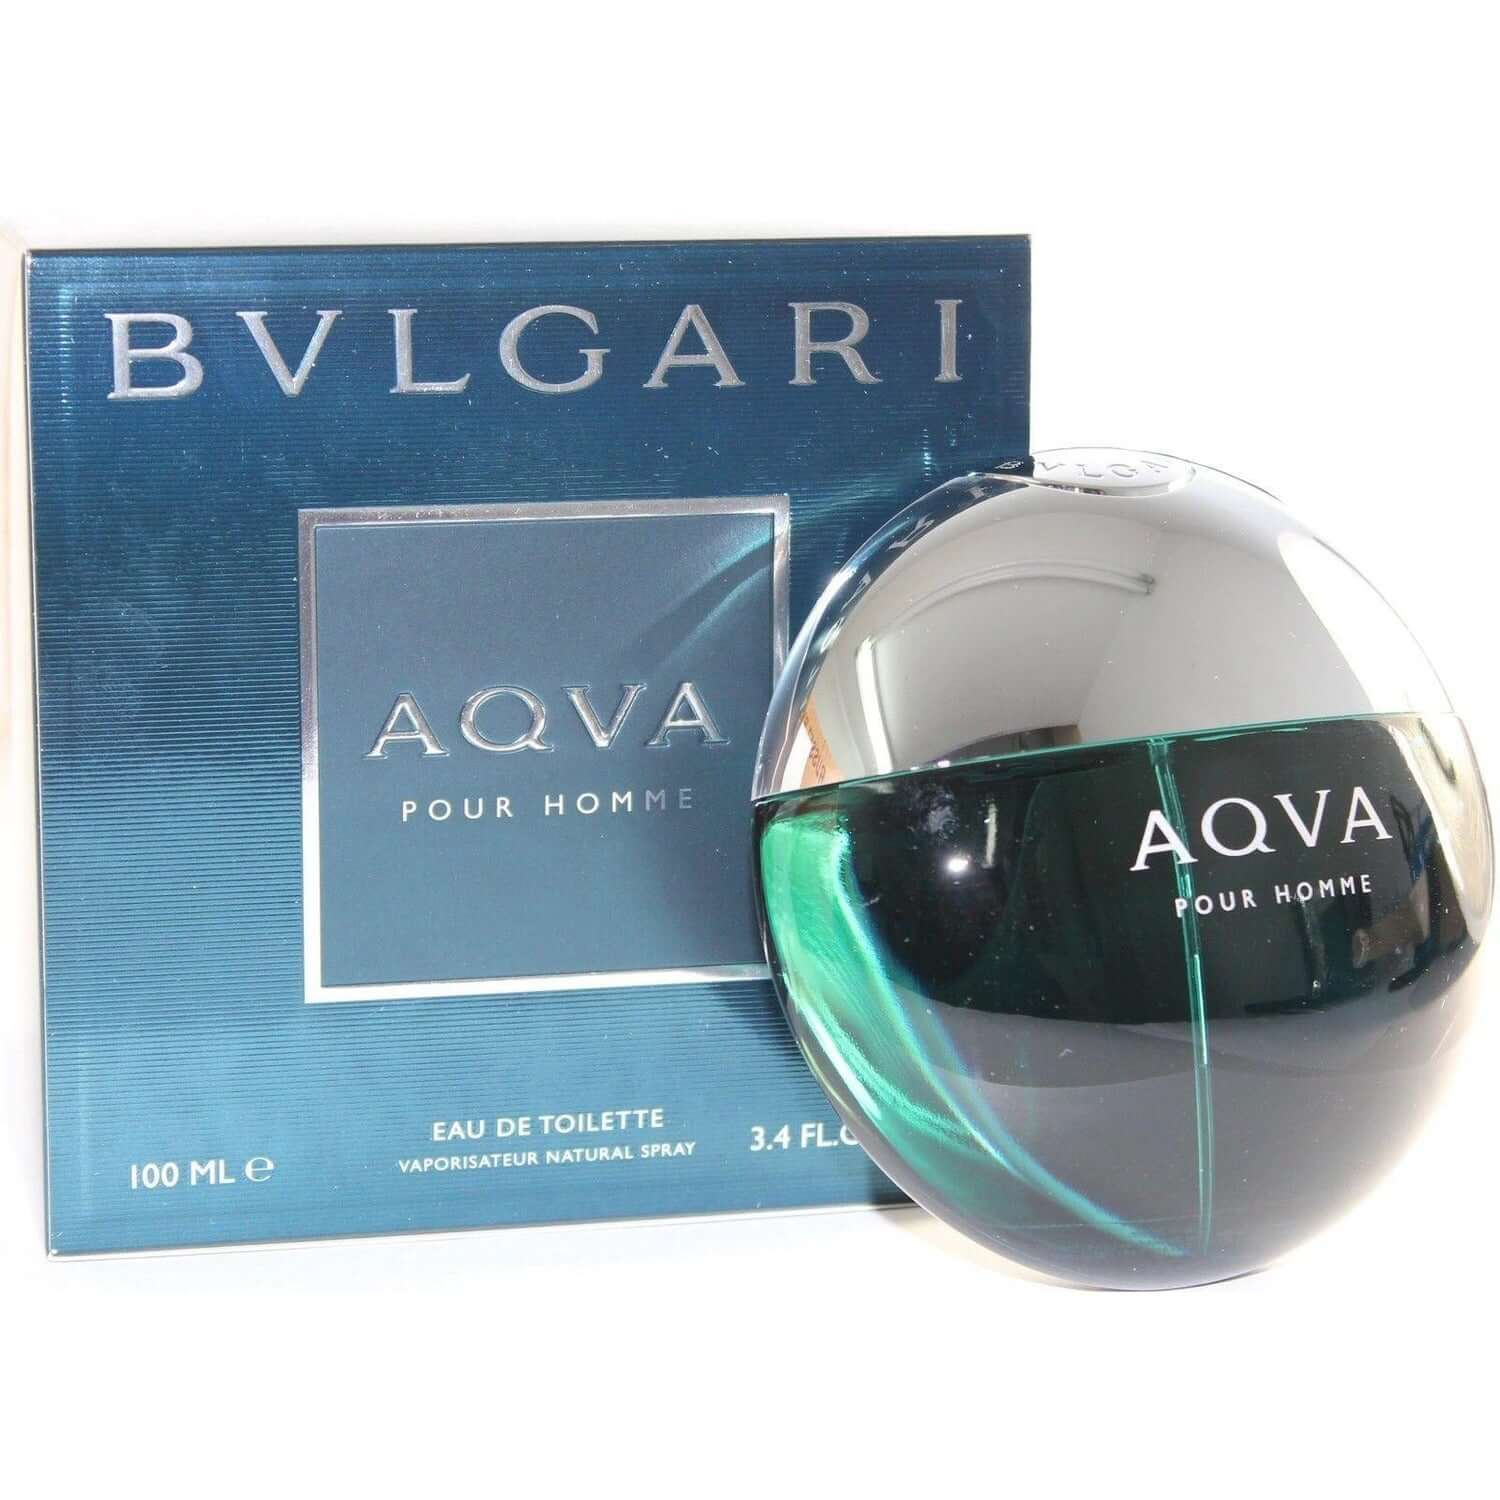 bvlgari-aqva-pour-homme-cologne-for-men-3-4-oz-3-3-oz-new-in-box-aqua